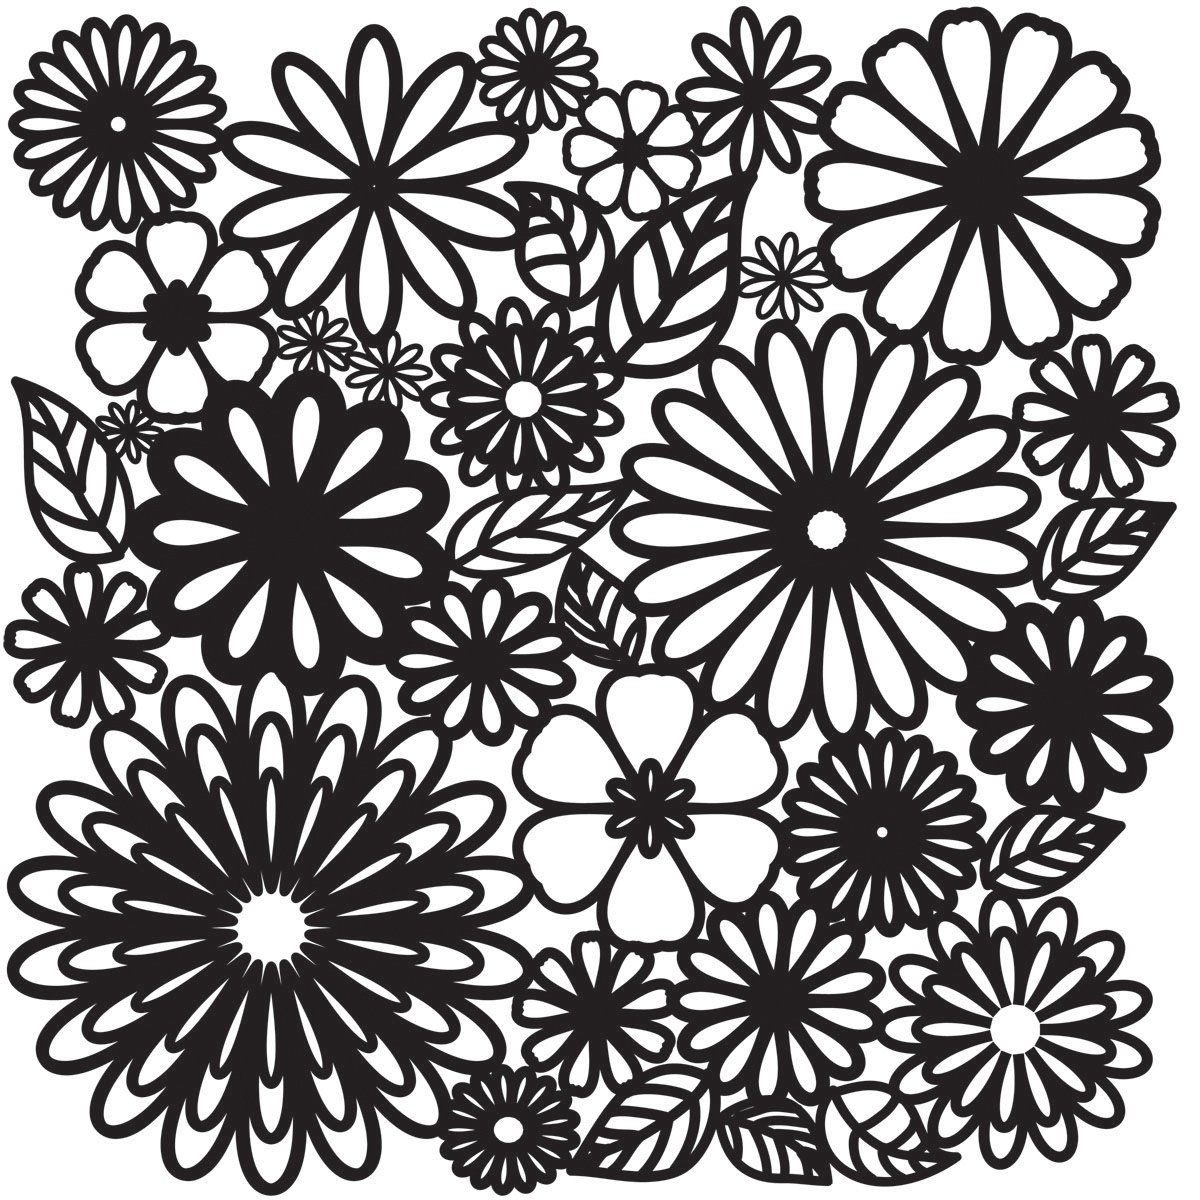 Crafters Officina 12 x 12 pollici Flower Frenzy modello, trasparente Crafters Workshop TCW-157